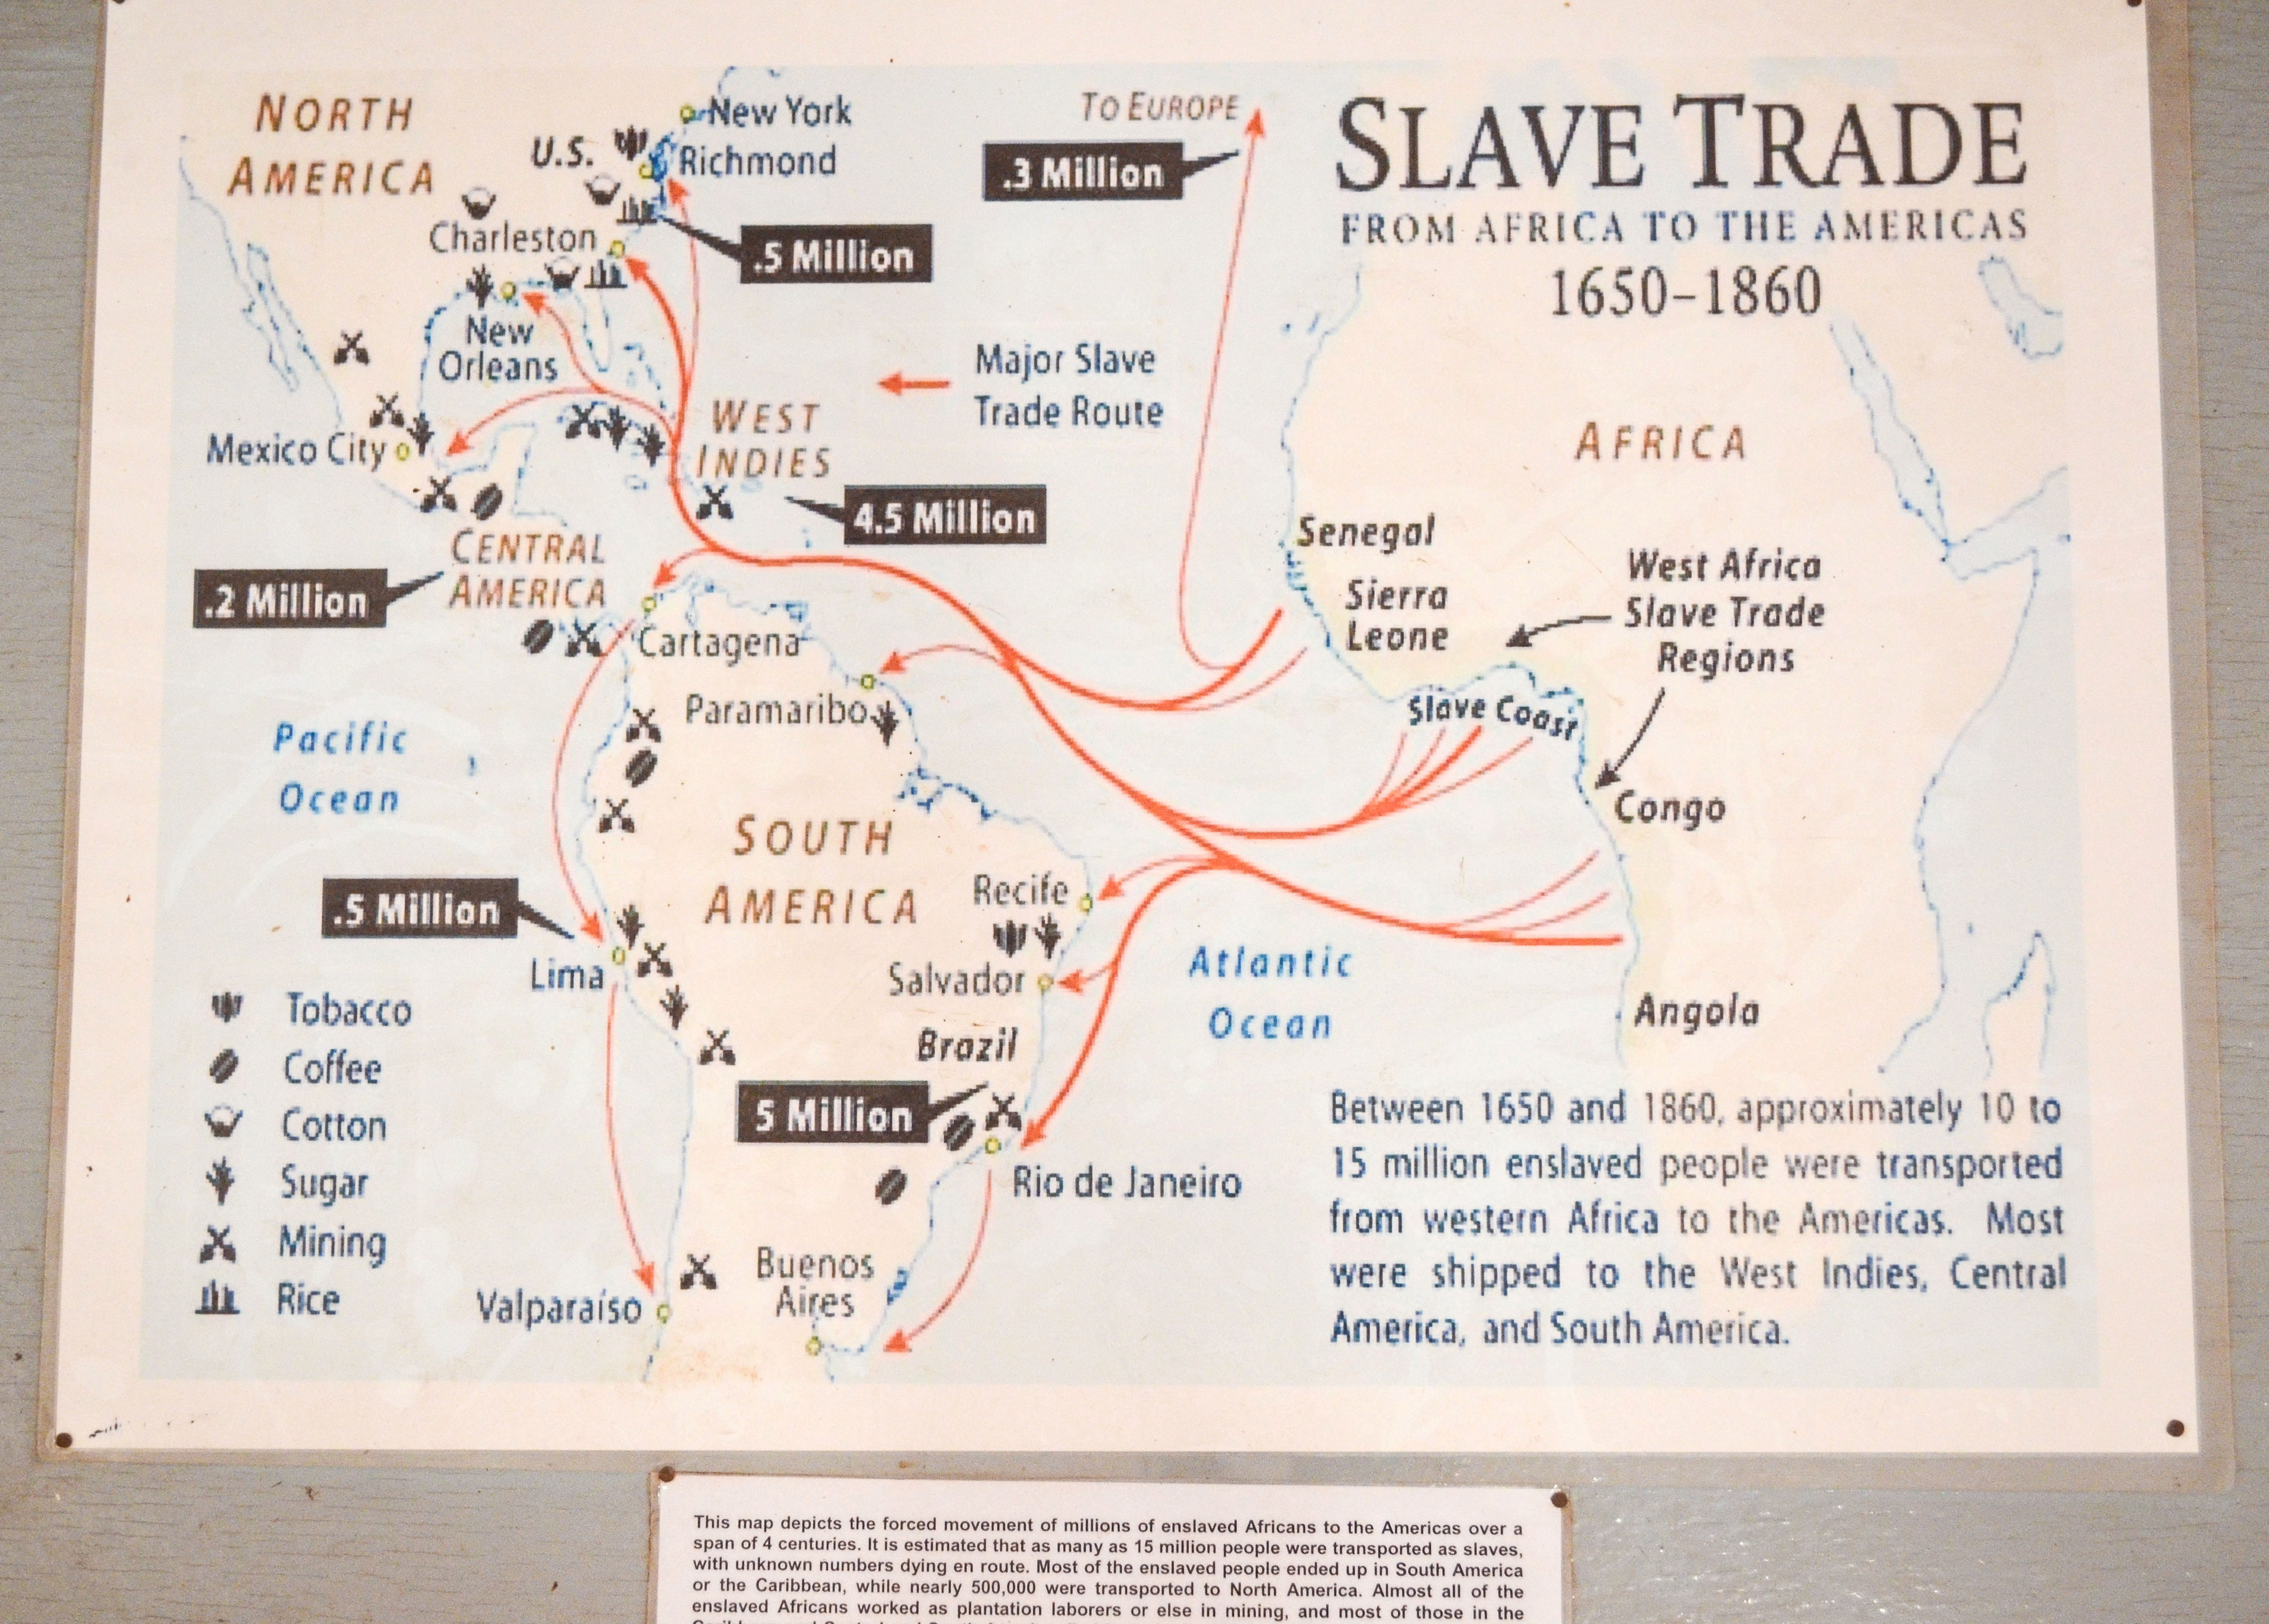 File:Slave trade from Africa to the Americas (8928374600).